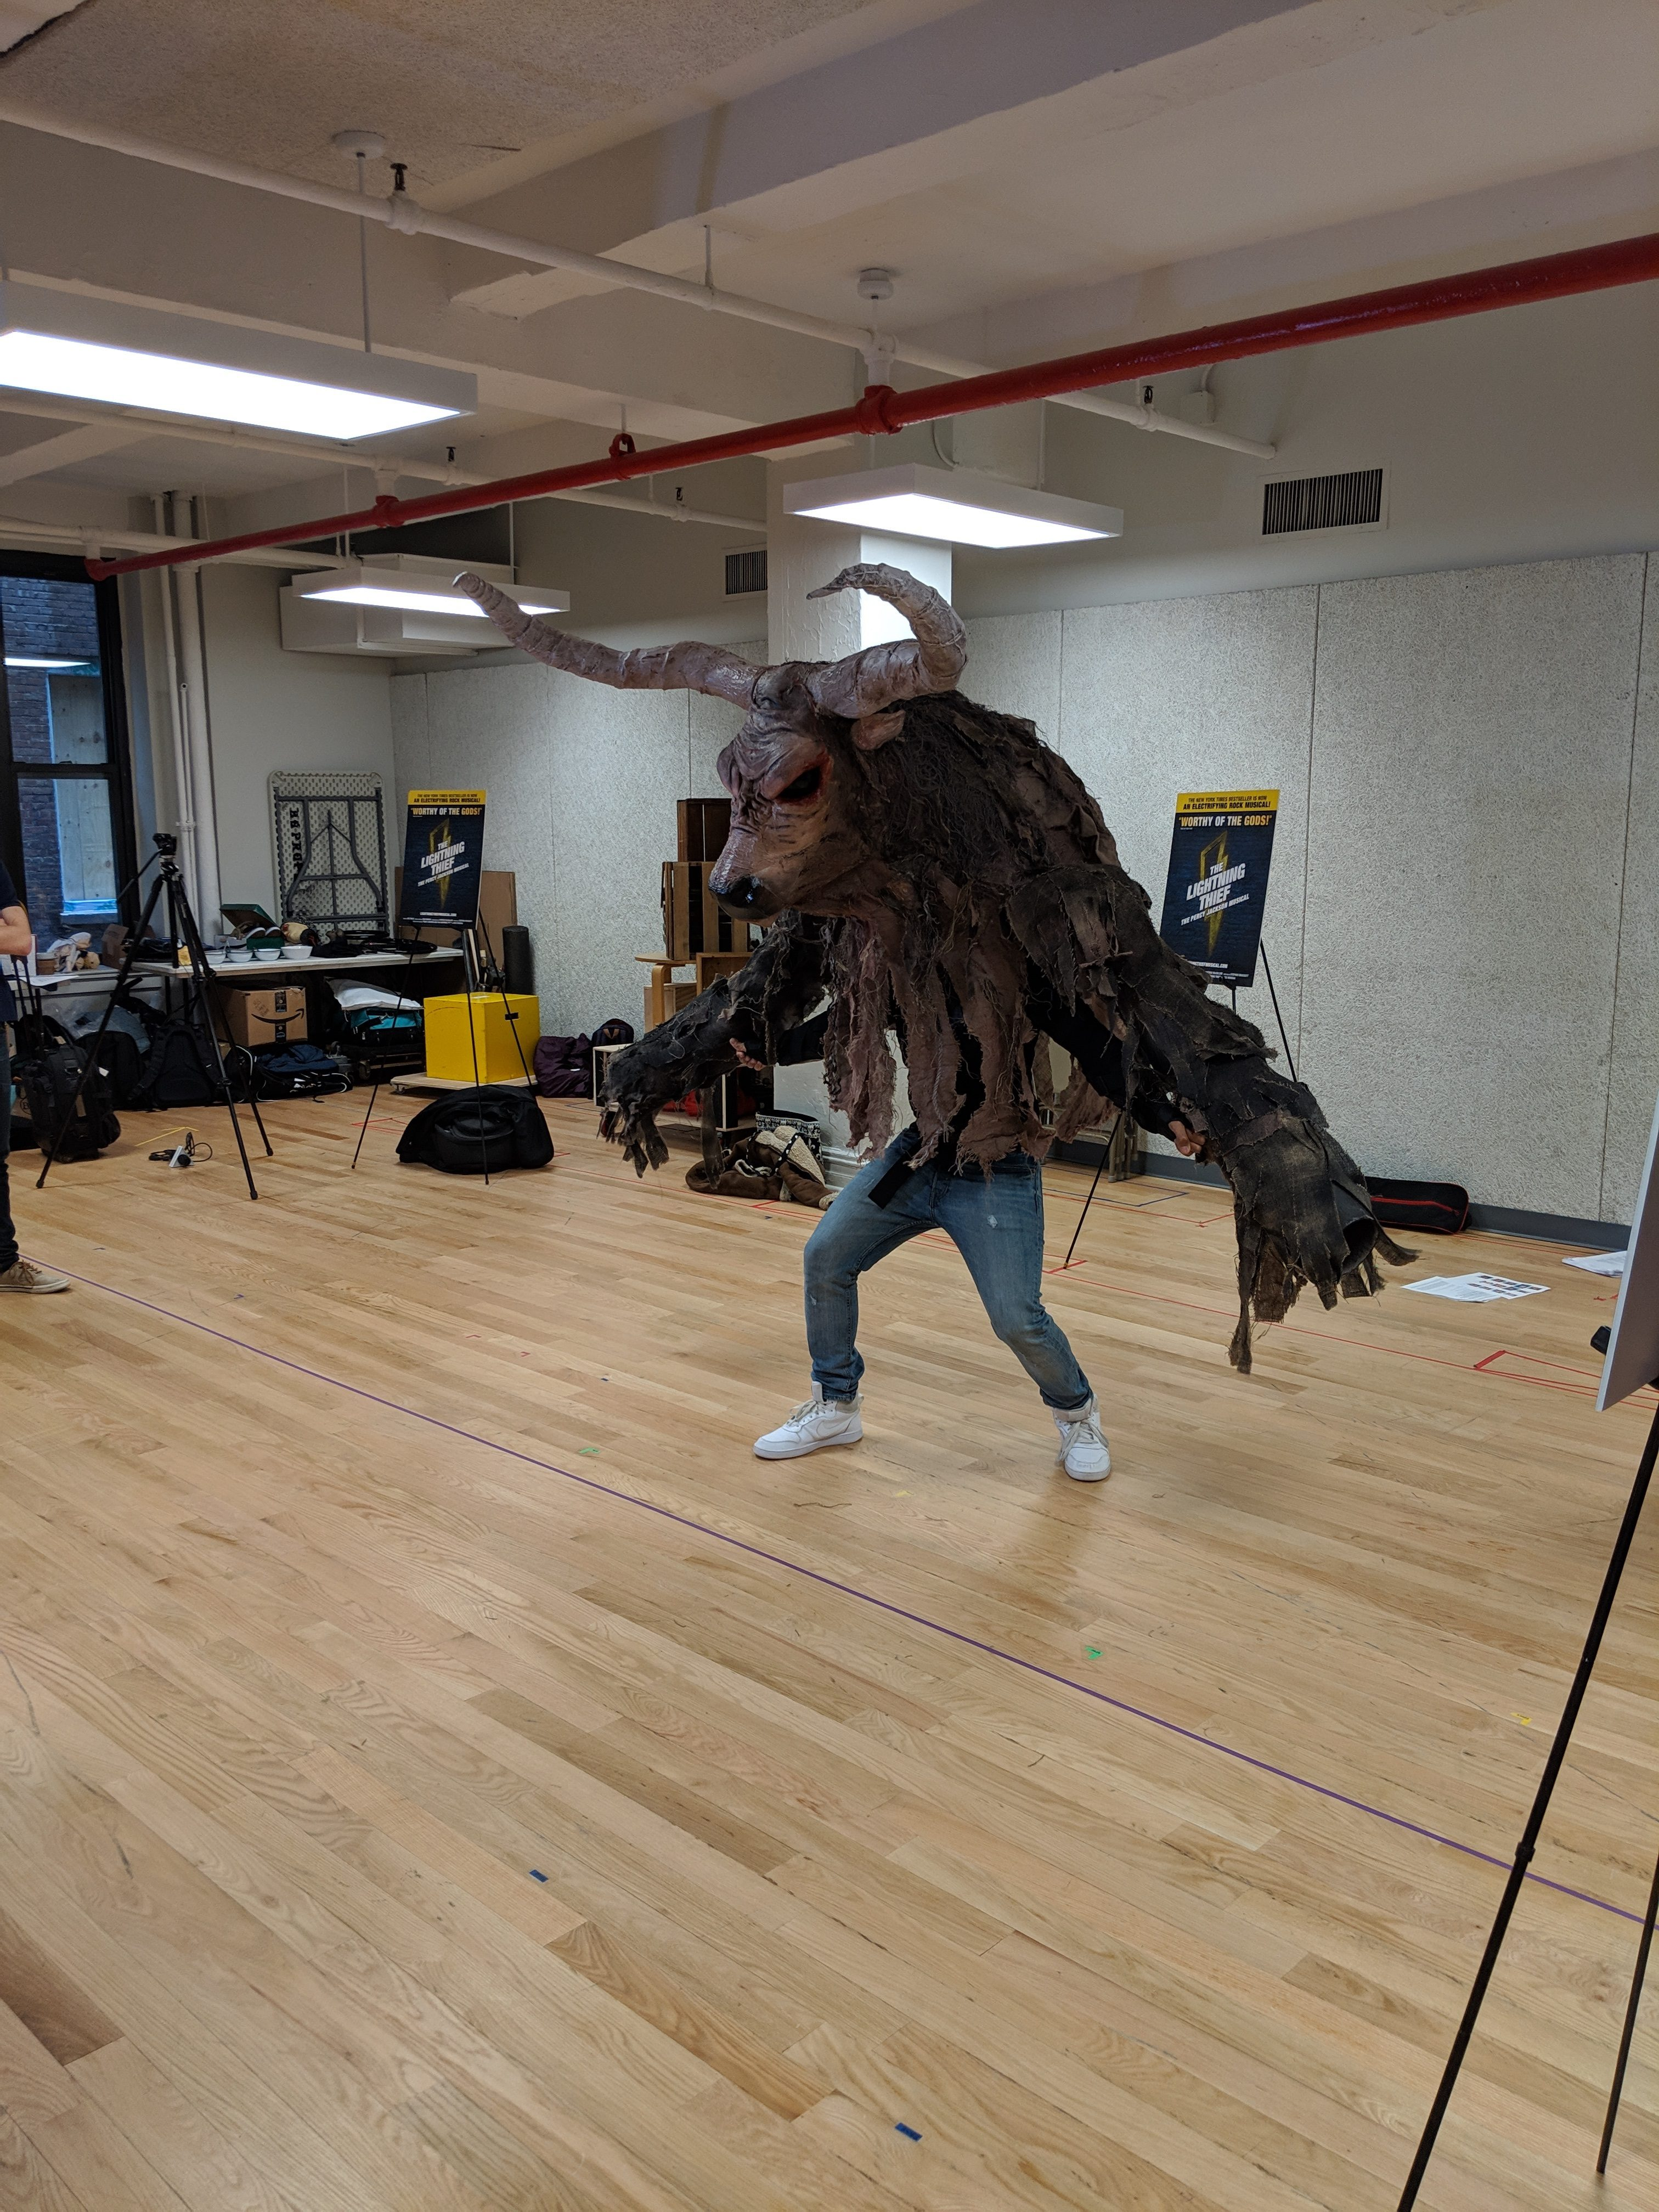 This minotaur costume is a large puppet designed especially for the scene when Percy fights the minotaur in the beginning of the show.